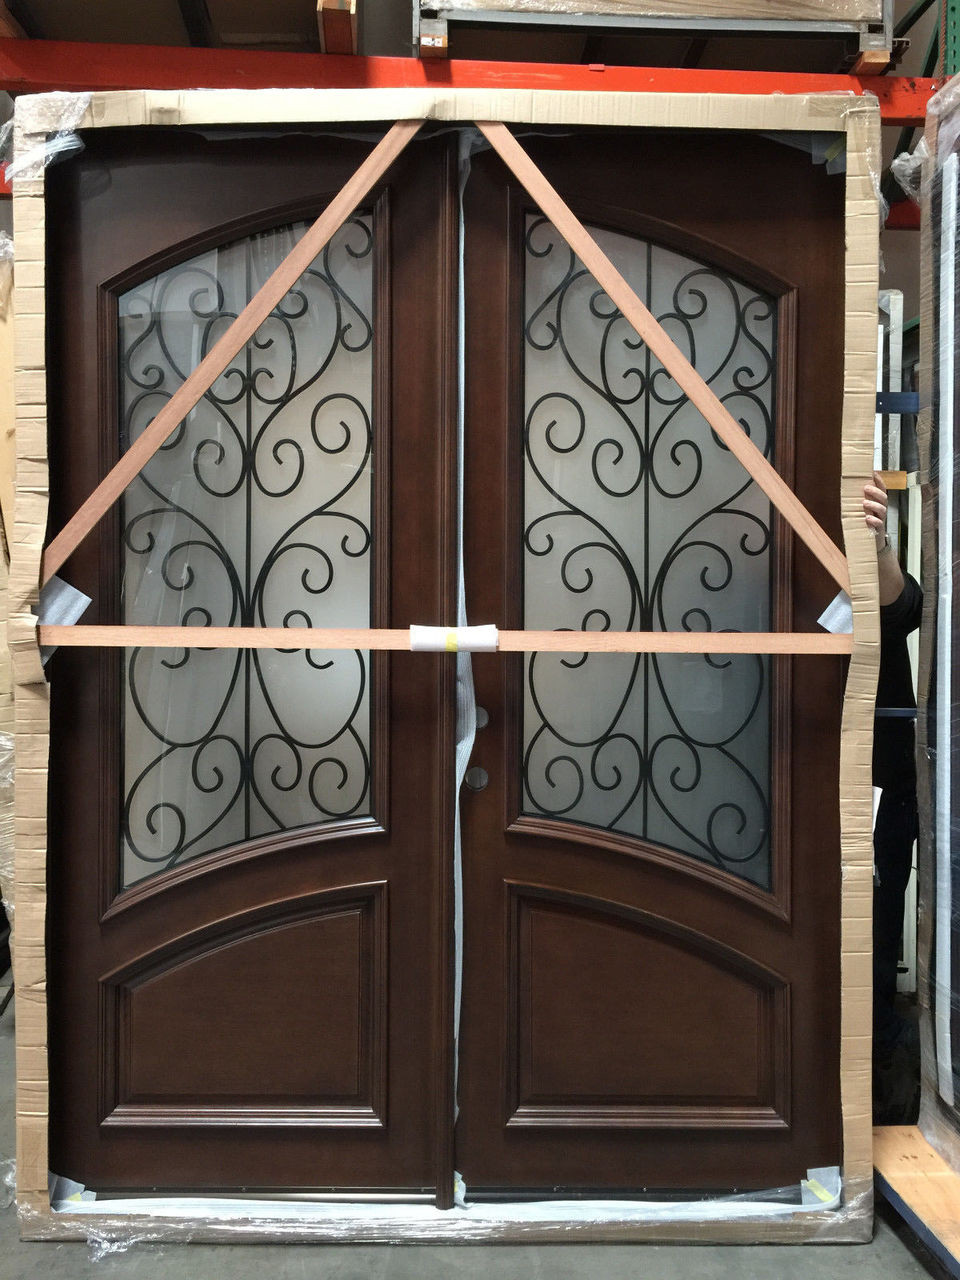 Incredible 6 0 X 8 0 Mahogany Amp Iron Double Door W Frosted Glass Door Handles Collection Olytizonderlifede